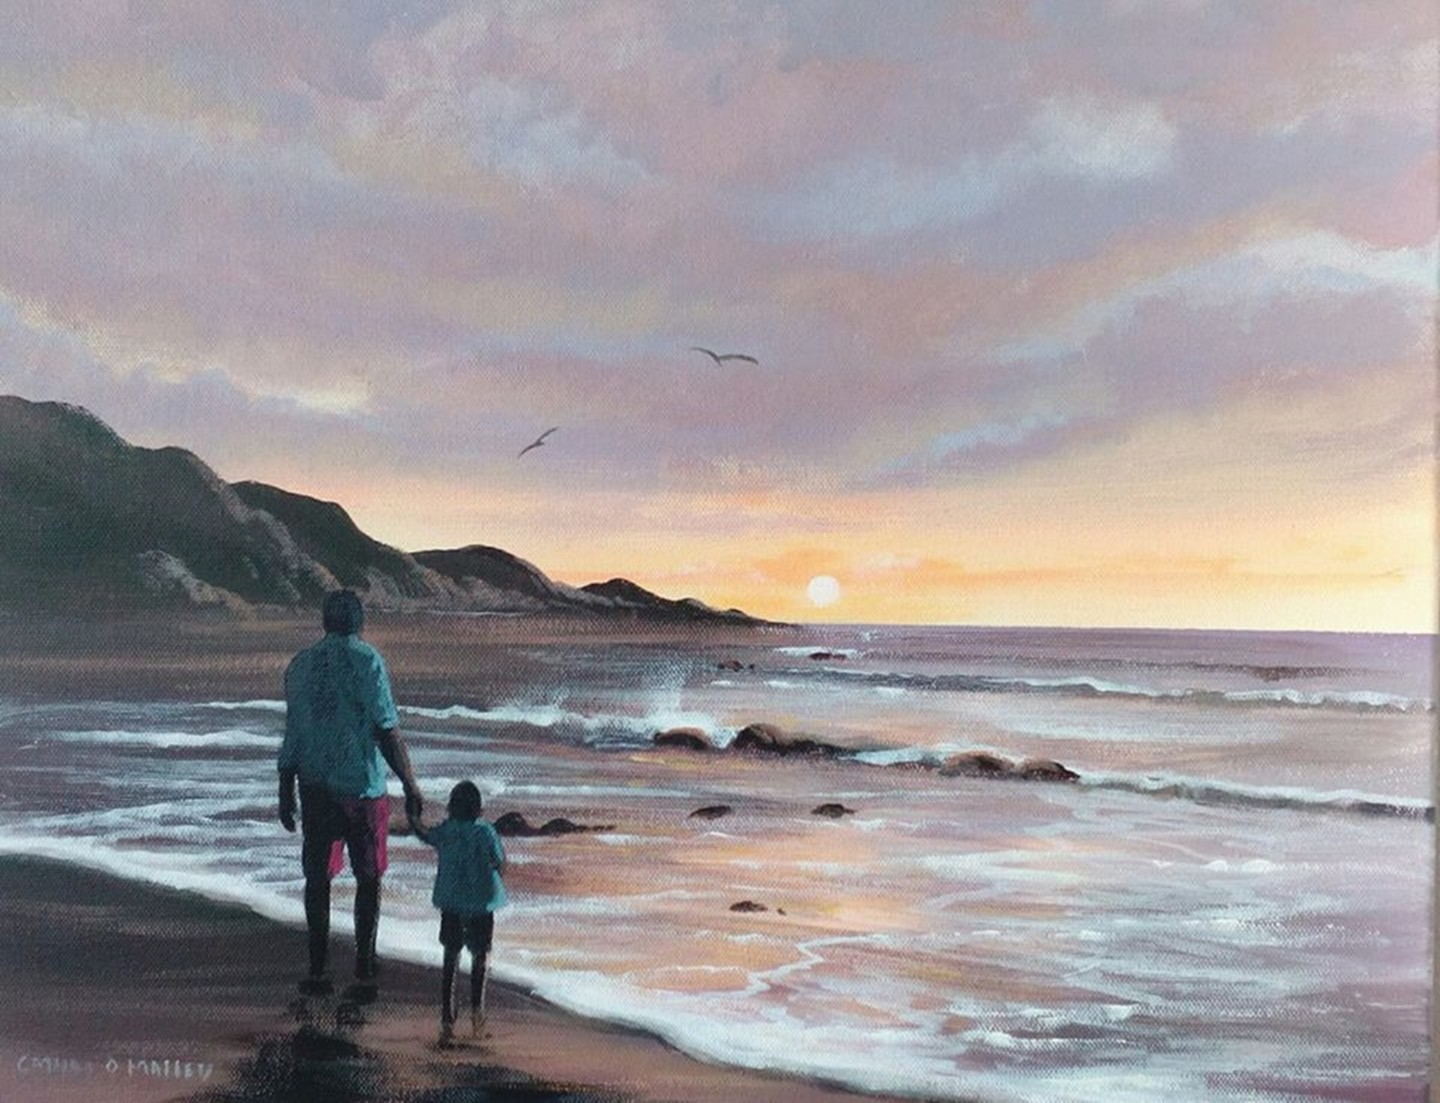 Cathal O Malley - summer evening waves